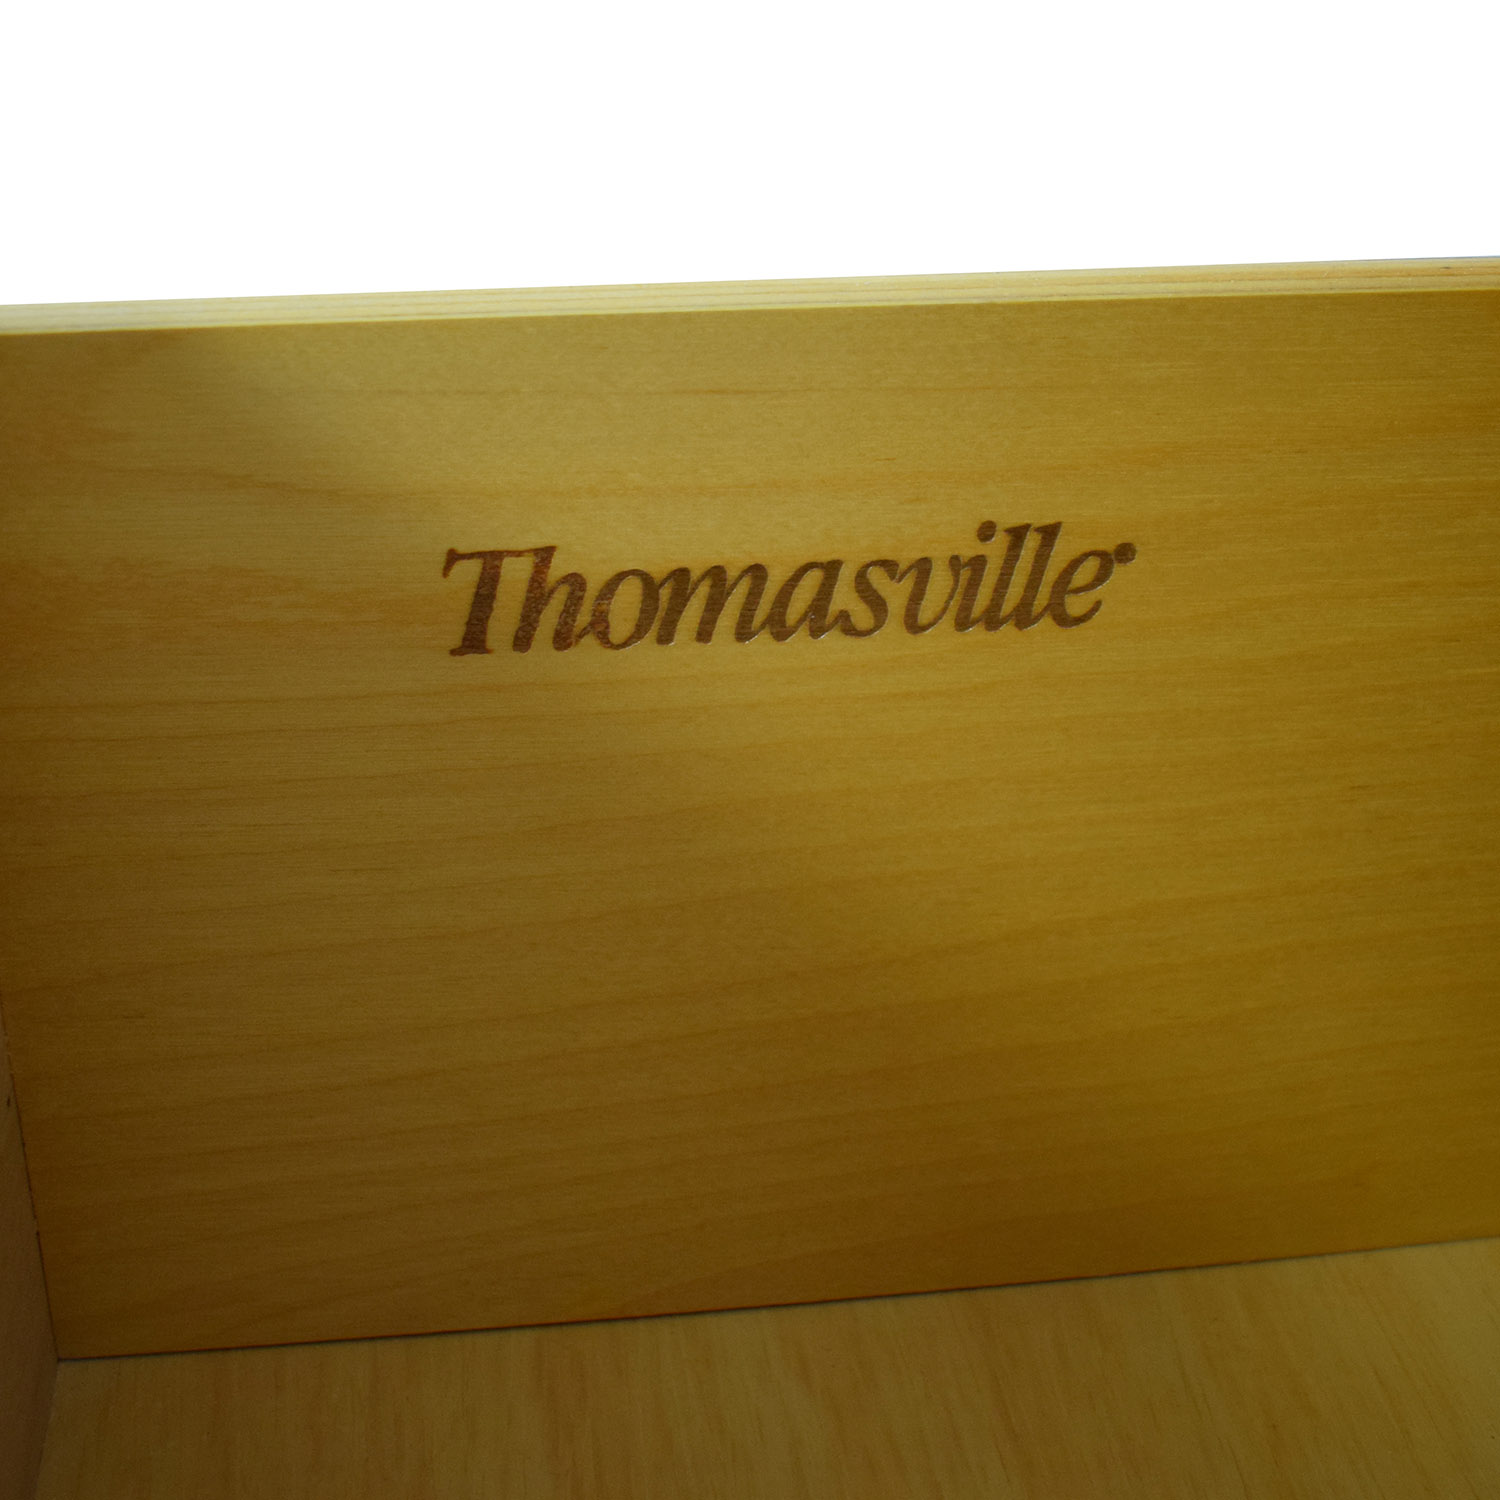 Thomasville Thomasville Wood Dresser with Middle Cabinet used